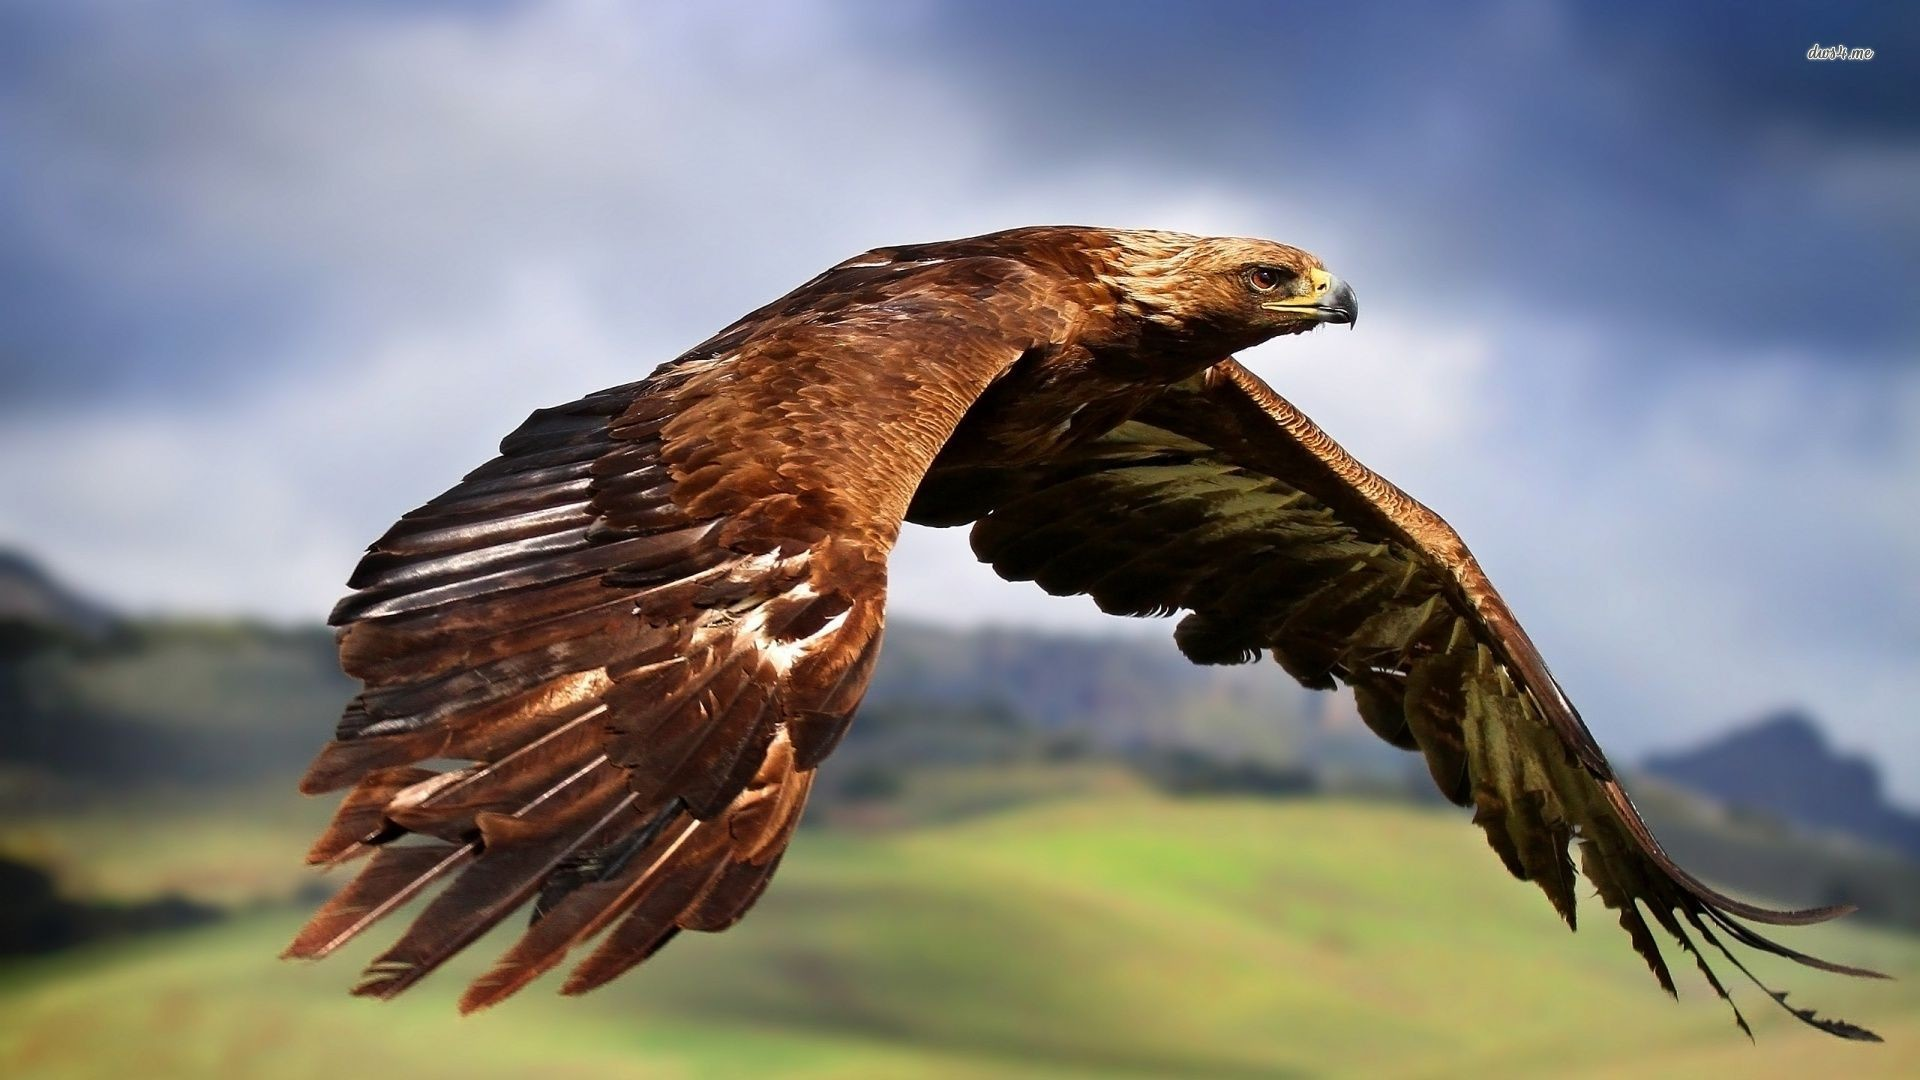 1920x1080 Golden Eagle wallpaper hd